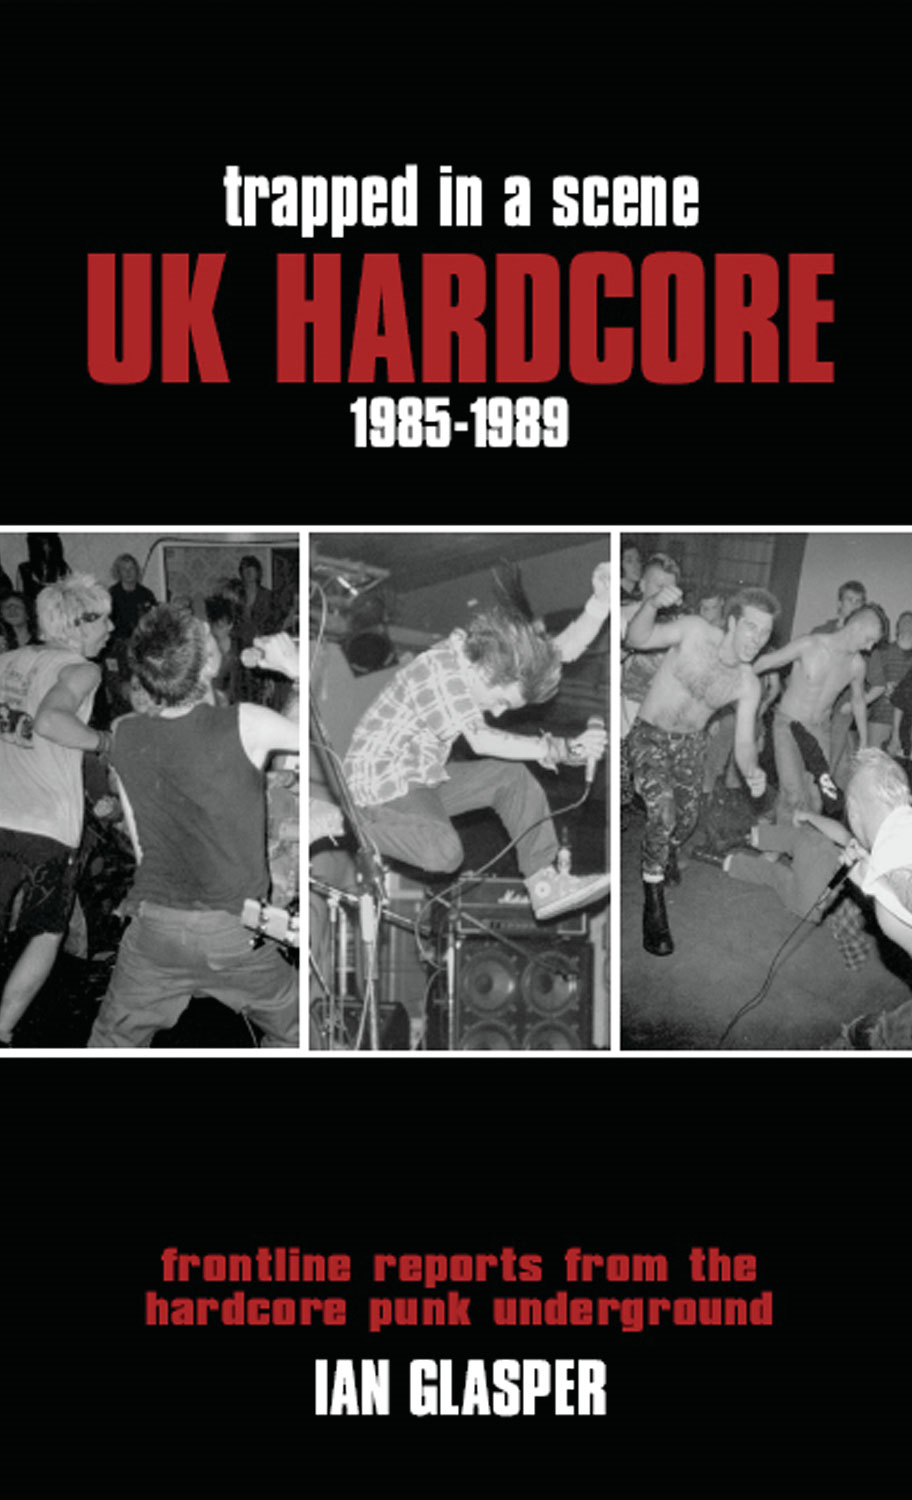 Trapped in a Scene: UK Hardcore 1985-1989: Frontline Reports from the Hardcore Punk Underground